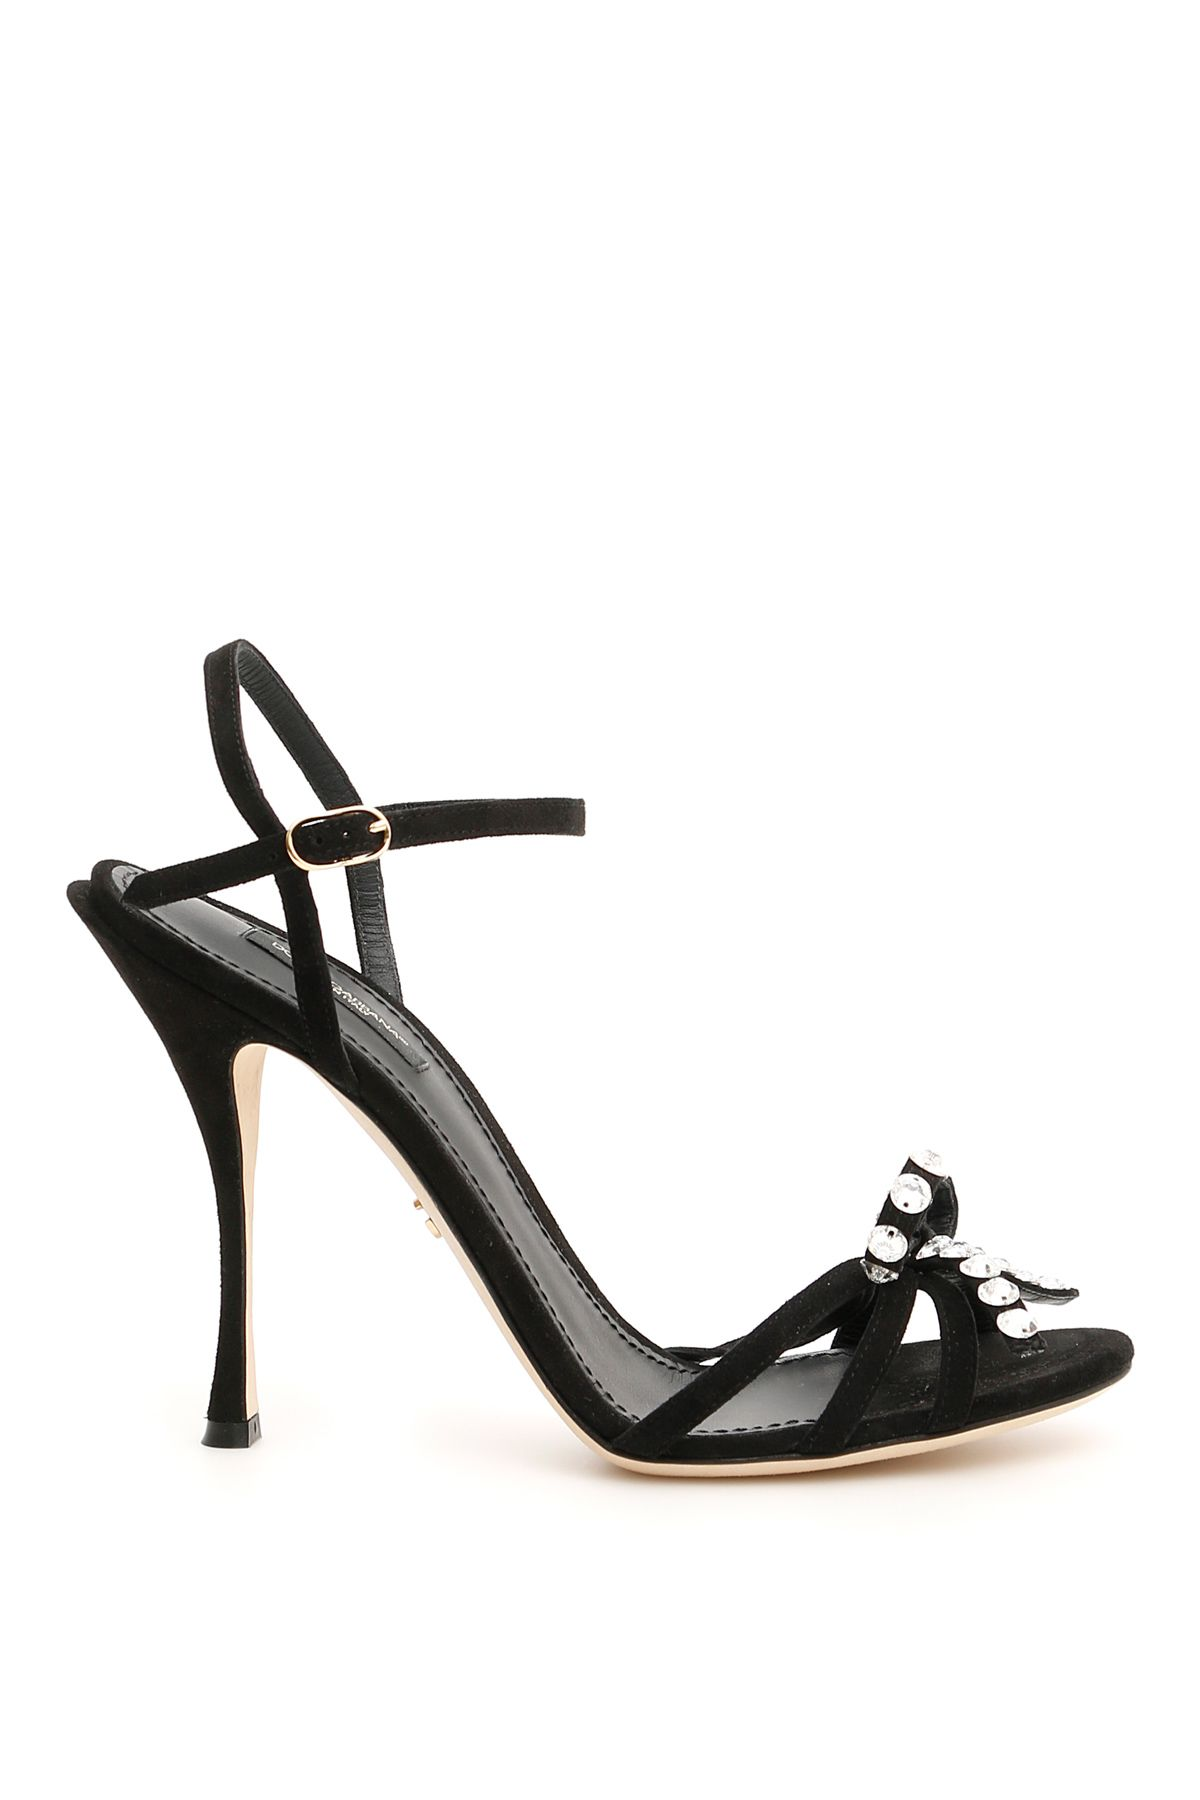 Dolce & Gabbana Keira Sandals With Crystals